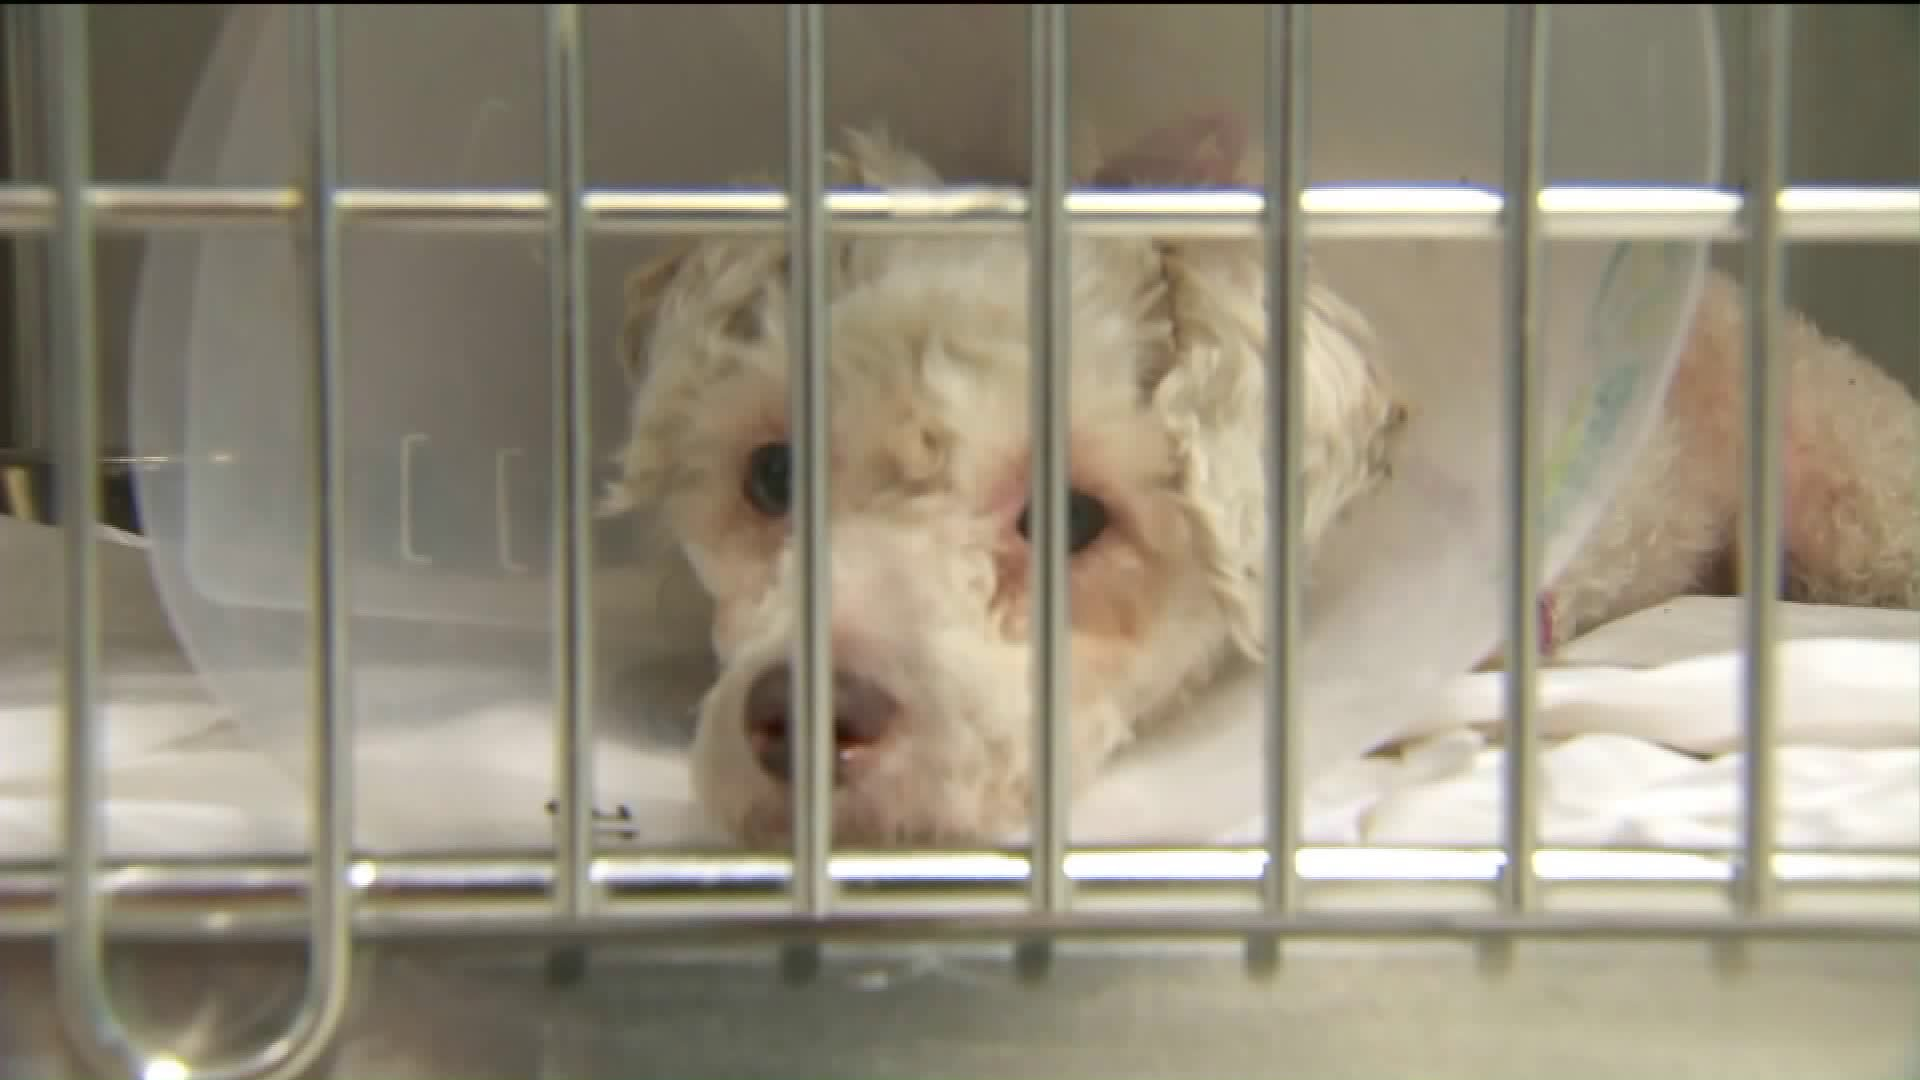 A pet dog is shown in an animal hospital in Agora Hills on September 6, 2017. (Credit: KTLA)